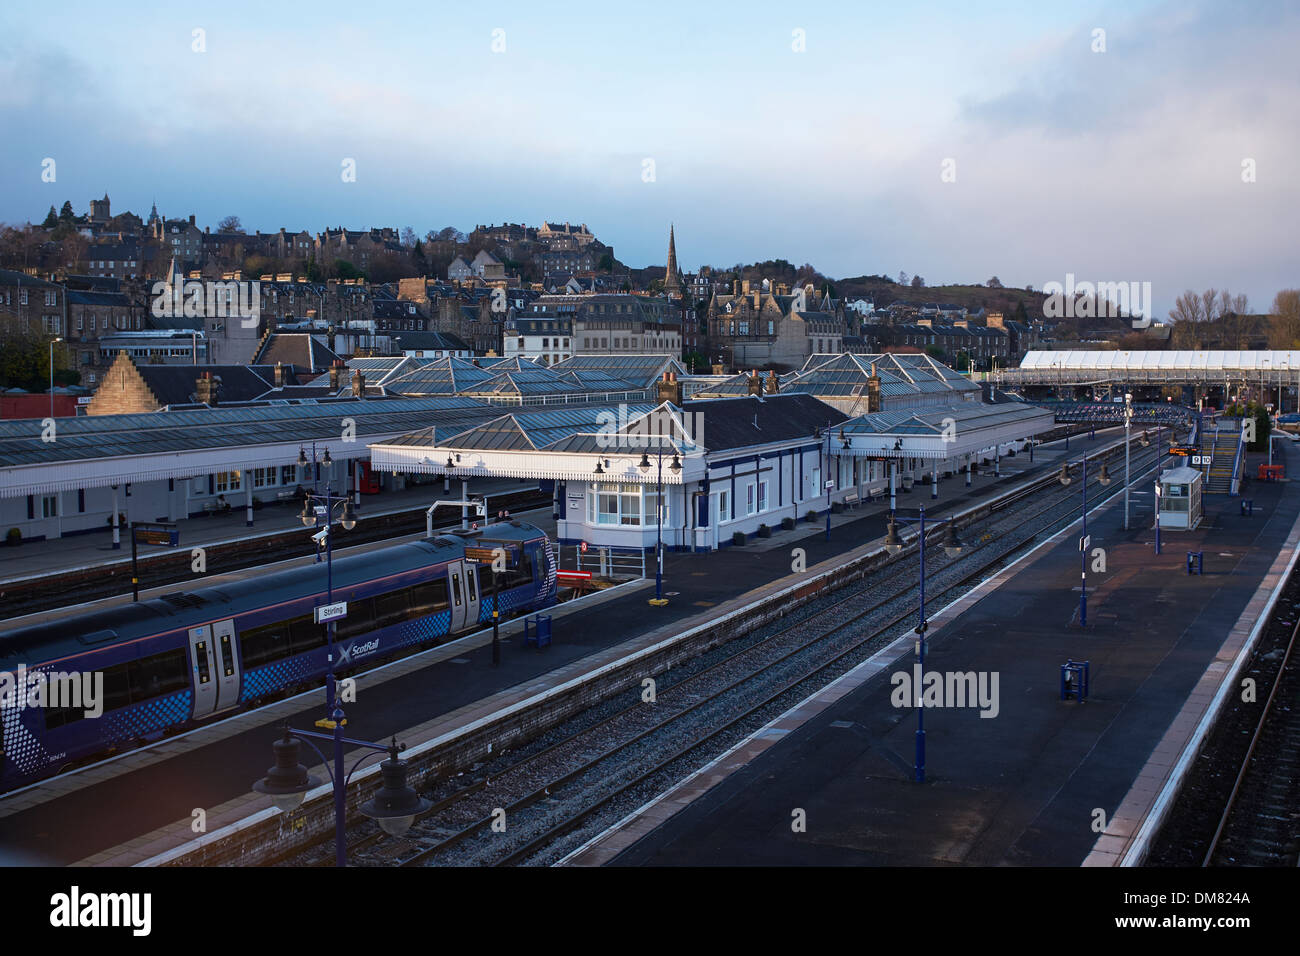 Stirling railway station with the Castle and city centre in the distance - Stock Image